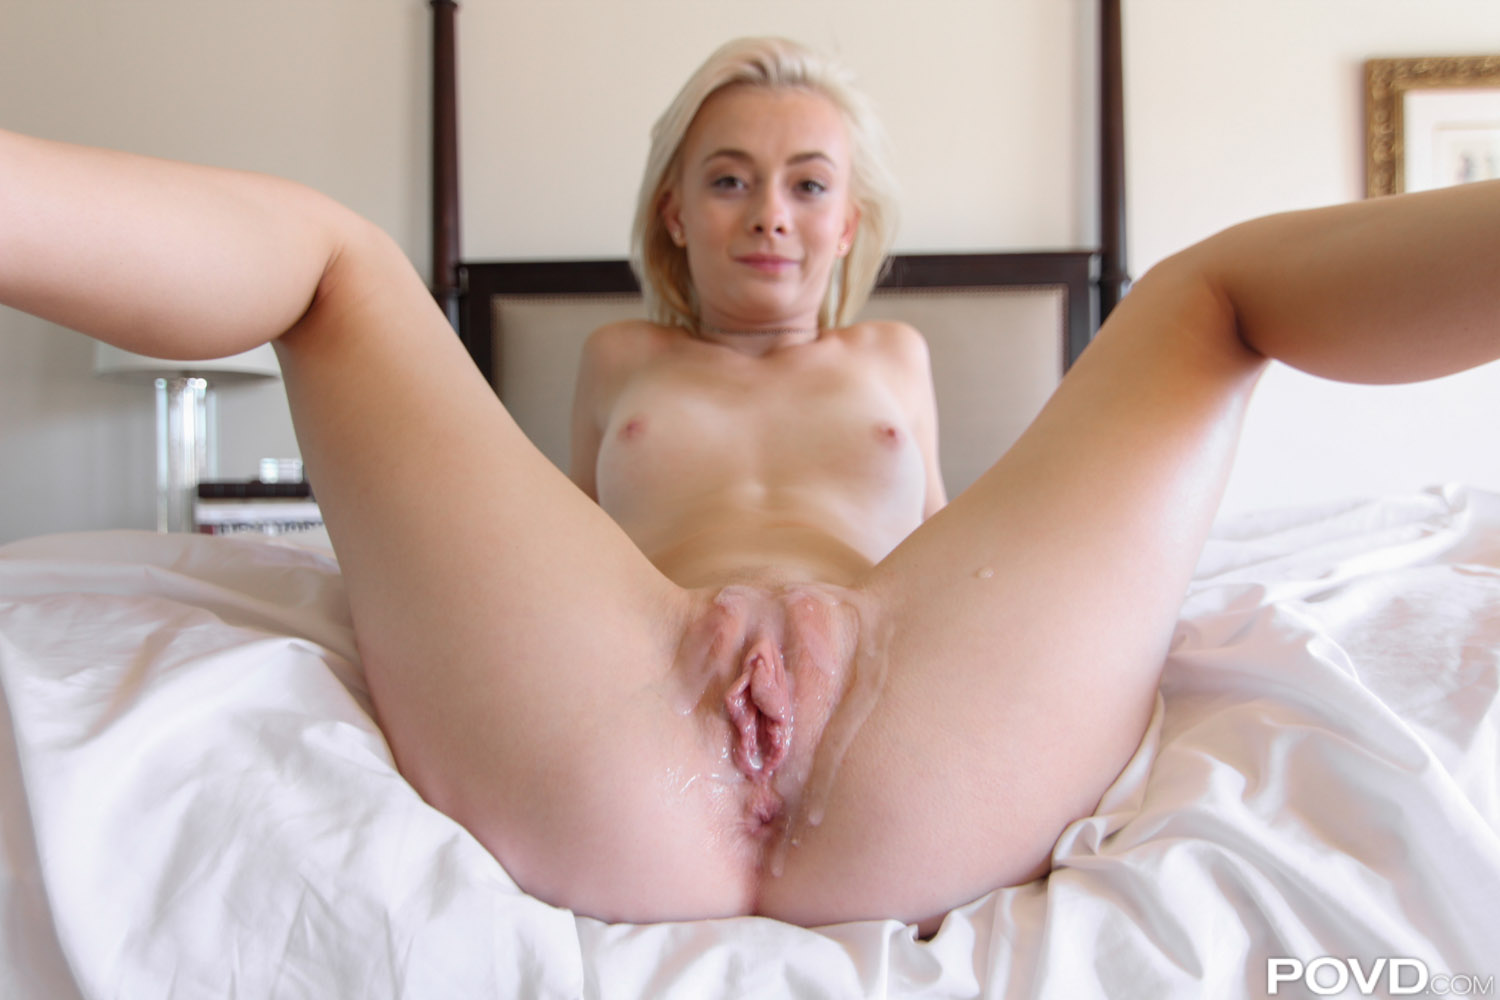 porn free Allysaamour fuck